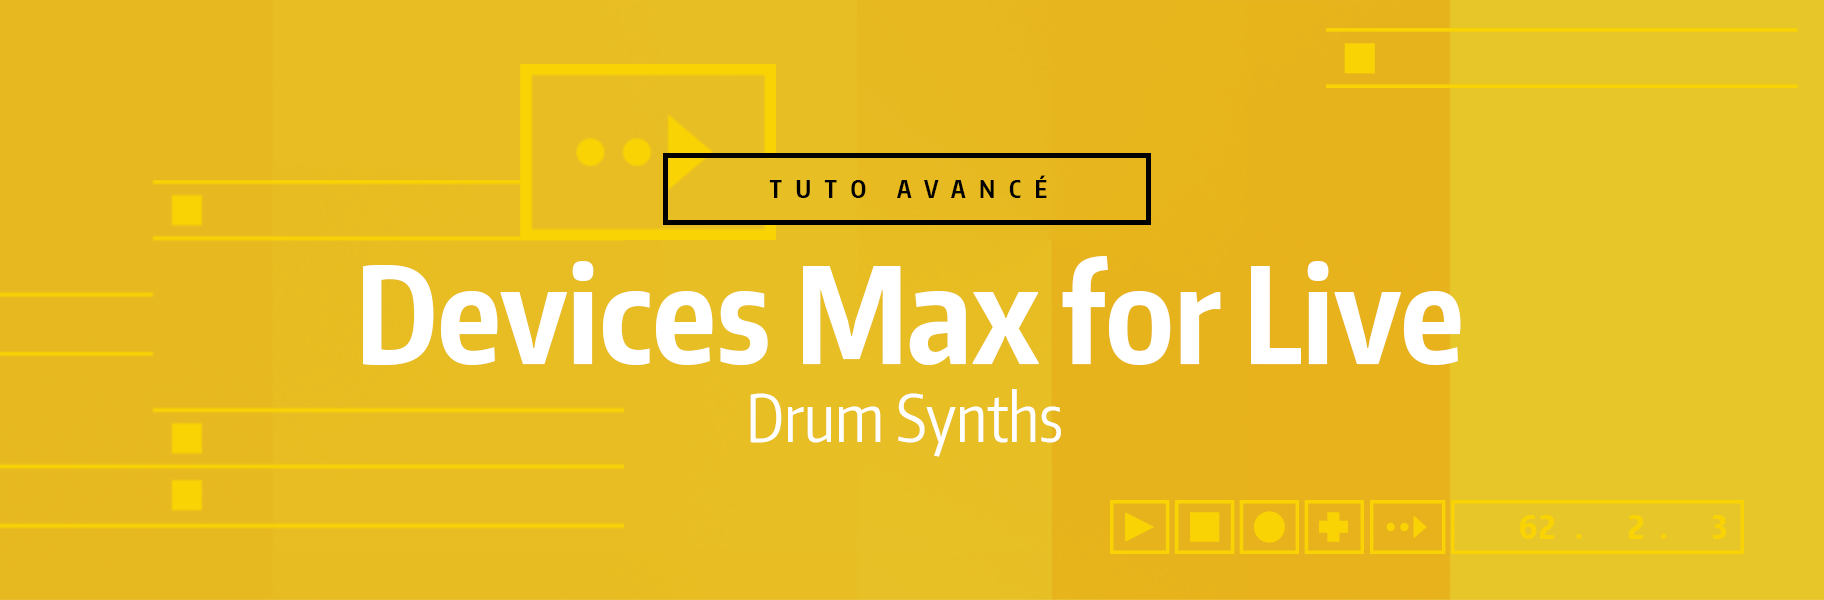 Tutoriel Ableton Live - Devices Max for Live - Drum Synths